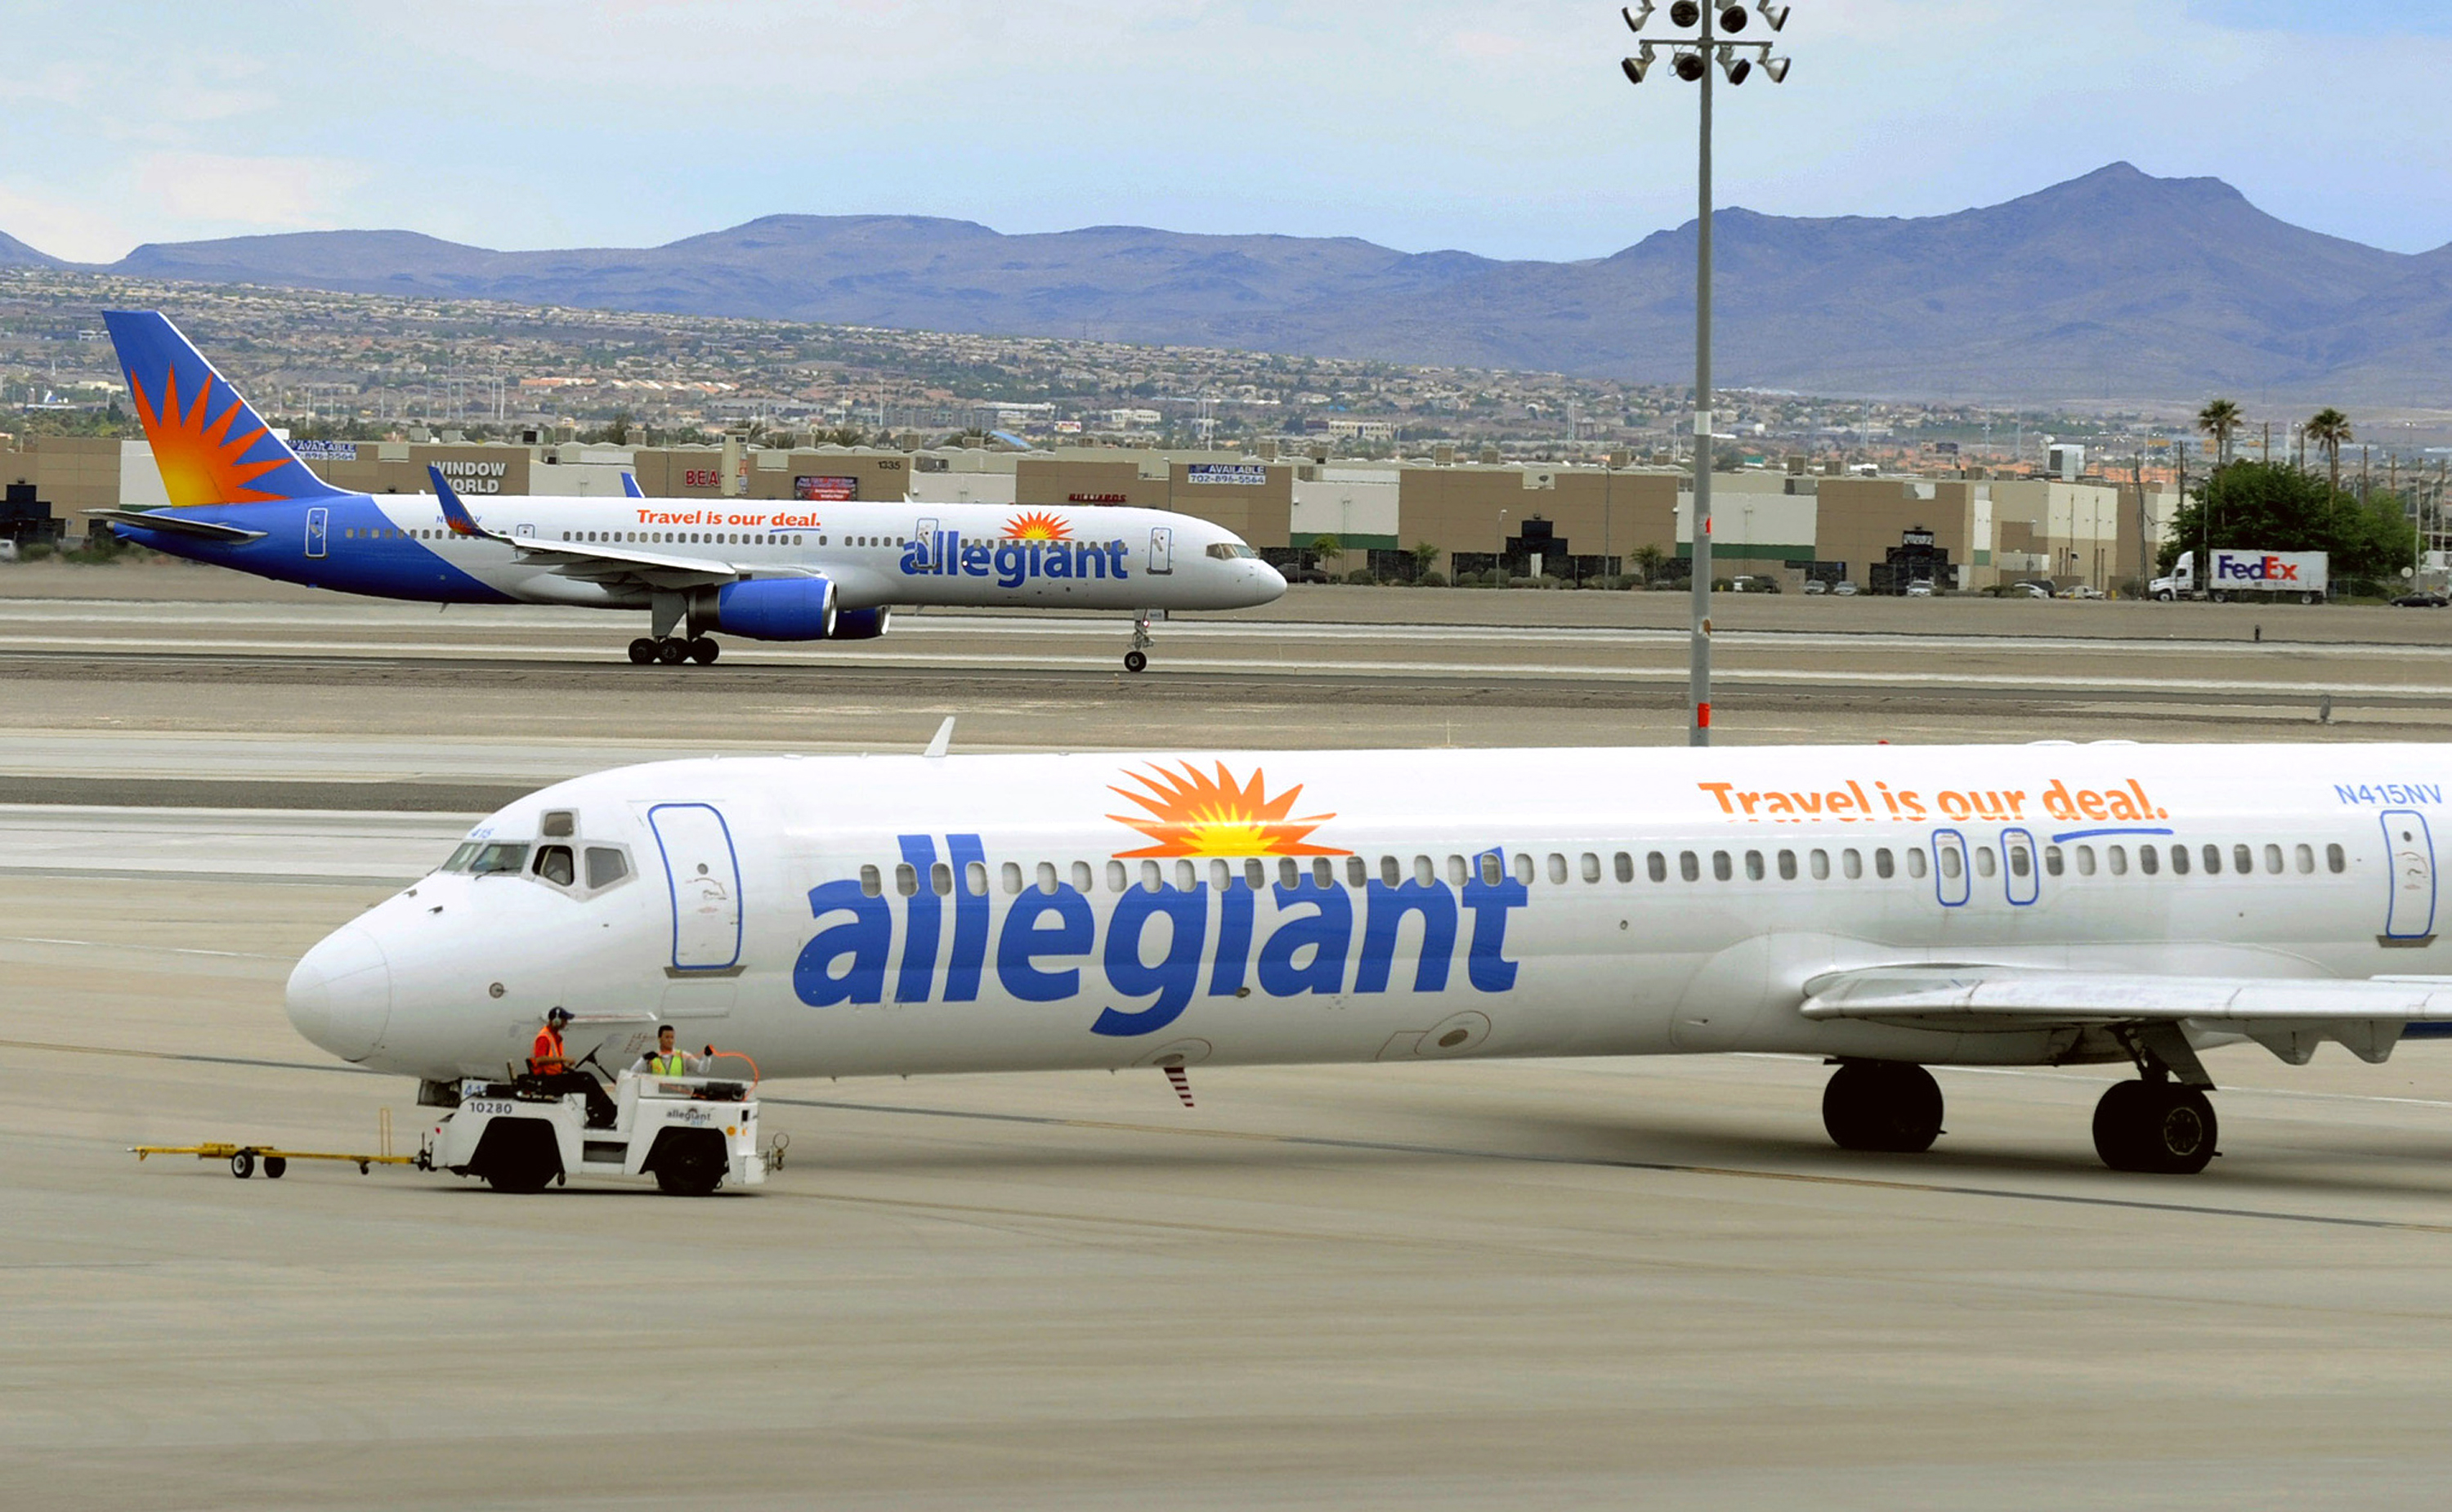 Allegiant Air - search hundreds of deals each minute to find the best flights from low cost airlines, Allegiant Airlines. Save % Off on Allegiant Air Tickets.